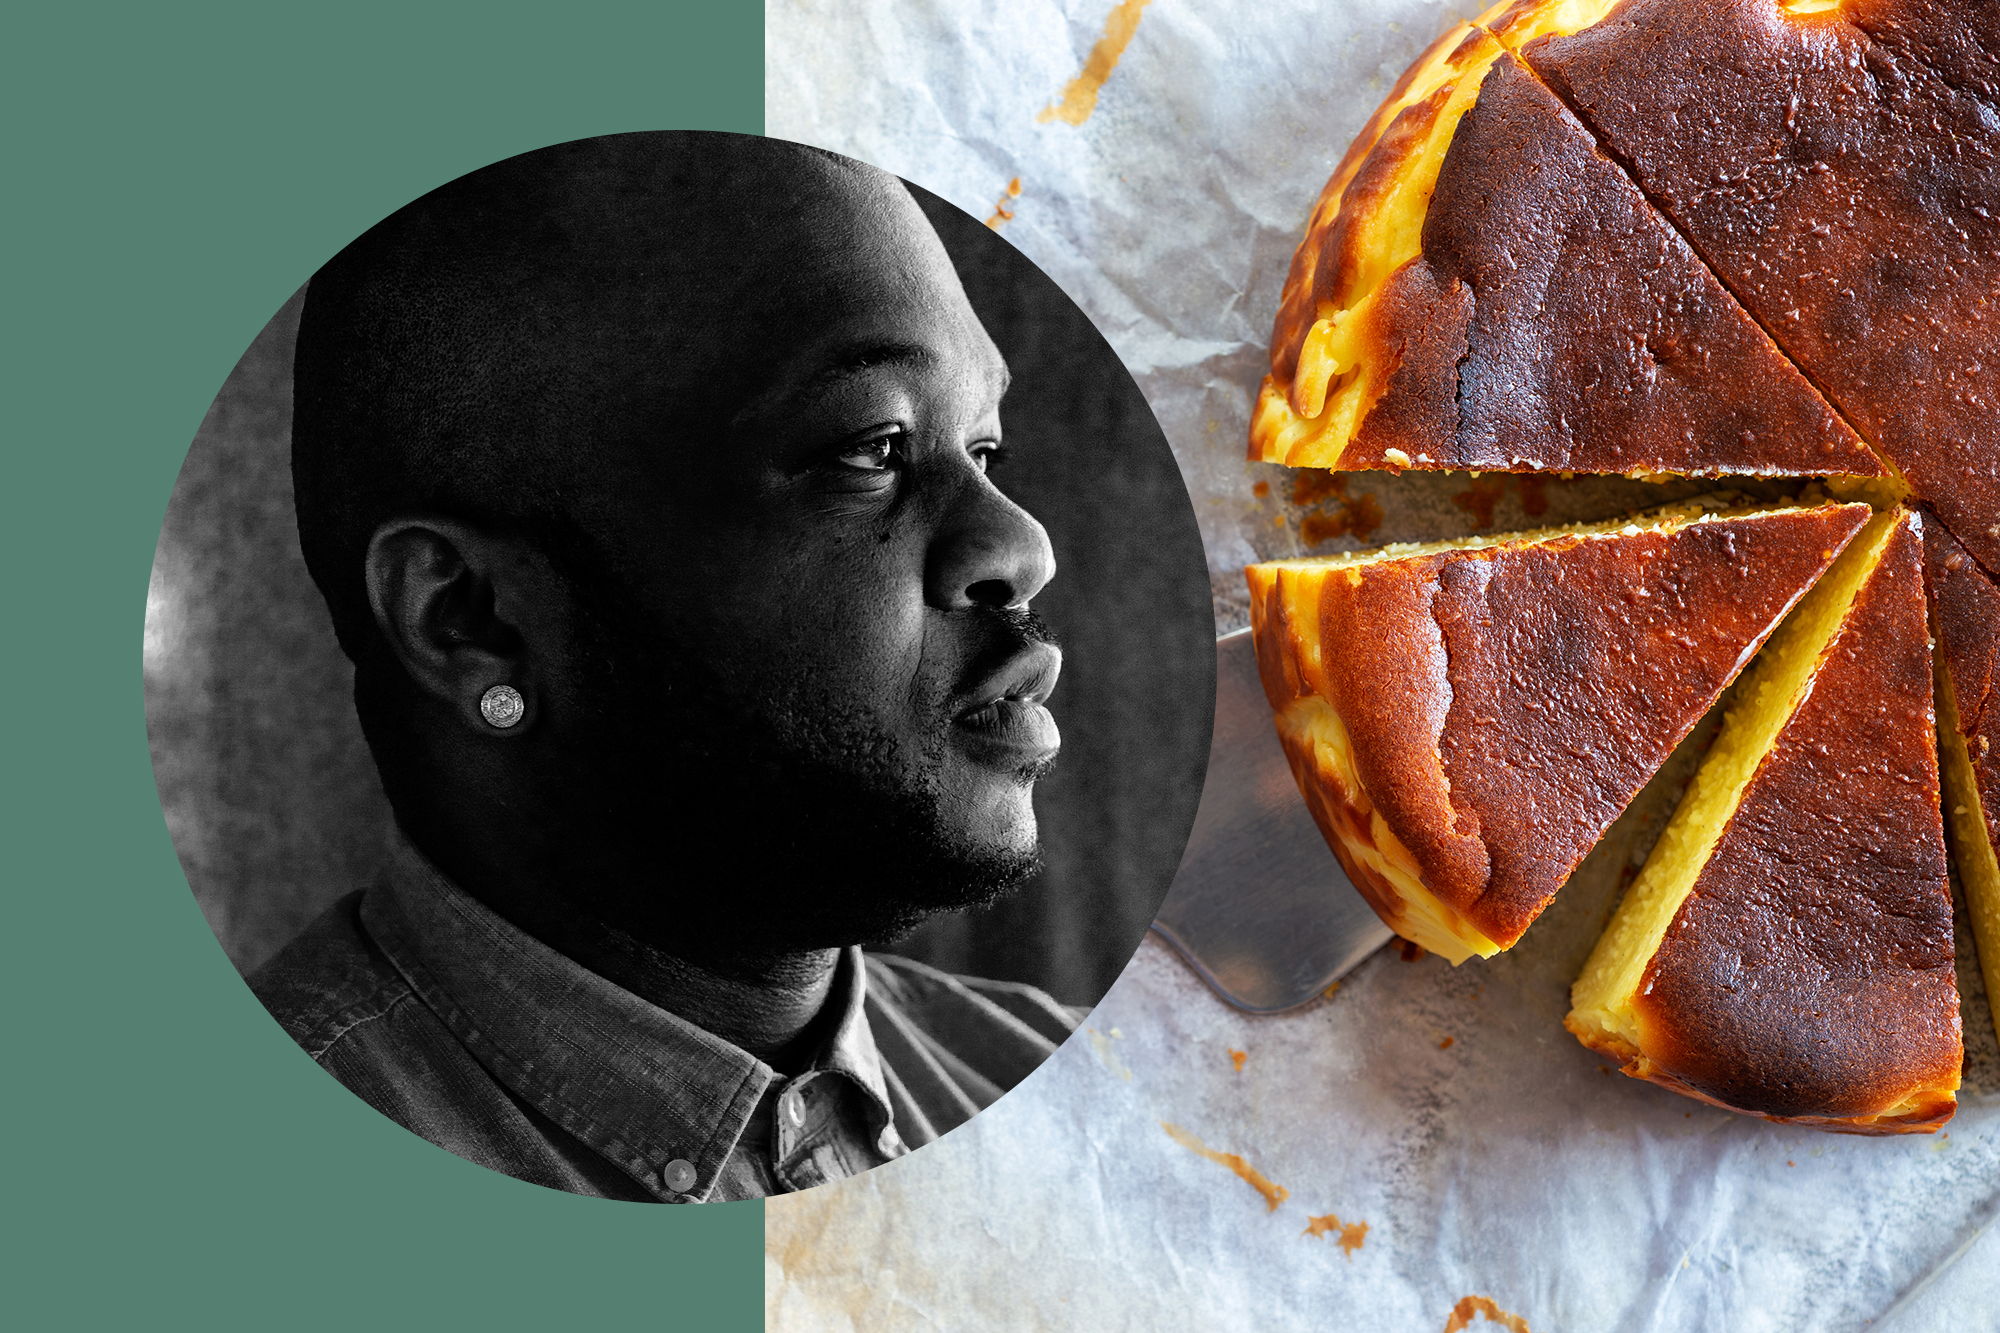 Best New Chef Tavel Bristol-Joseph | Basque Cheesecake